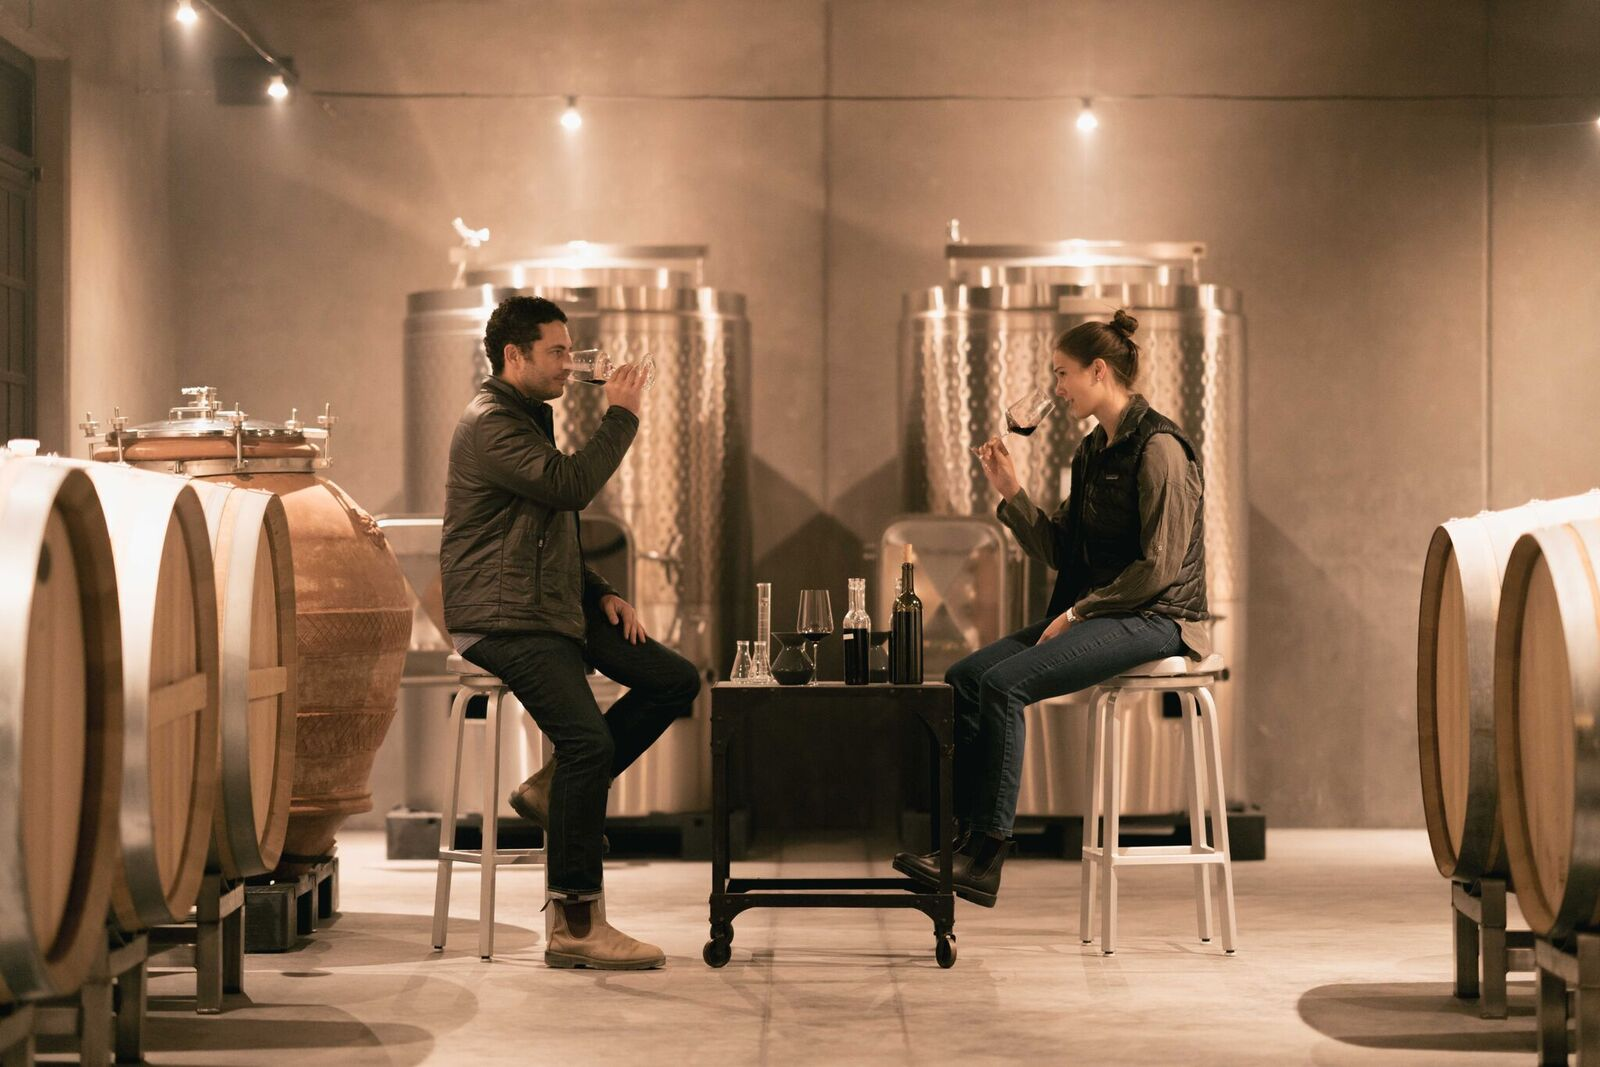 Helianthus Wine - Jason and Jessica in the cellar